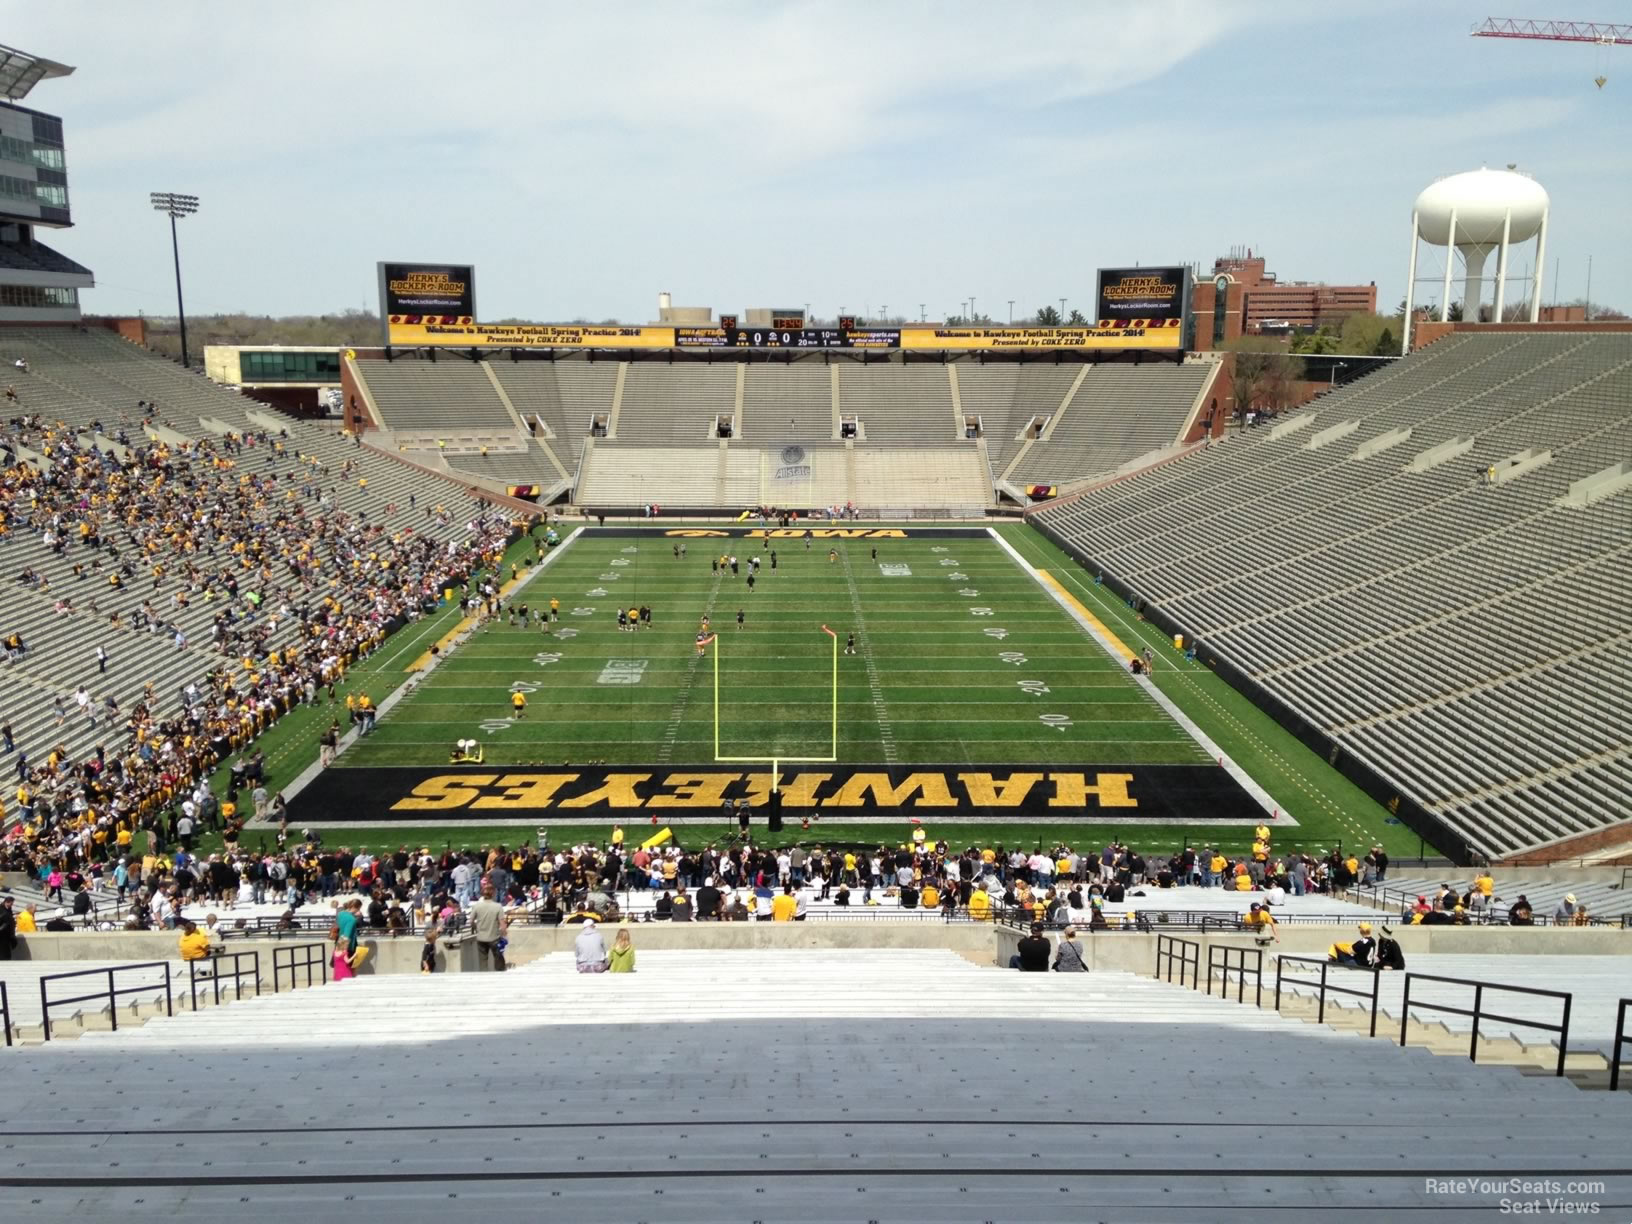 Section 216 seat view